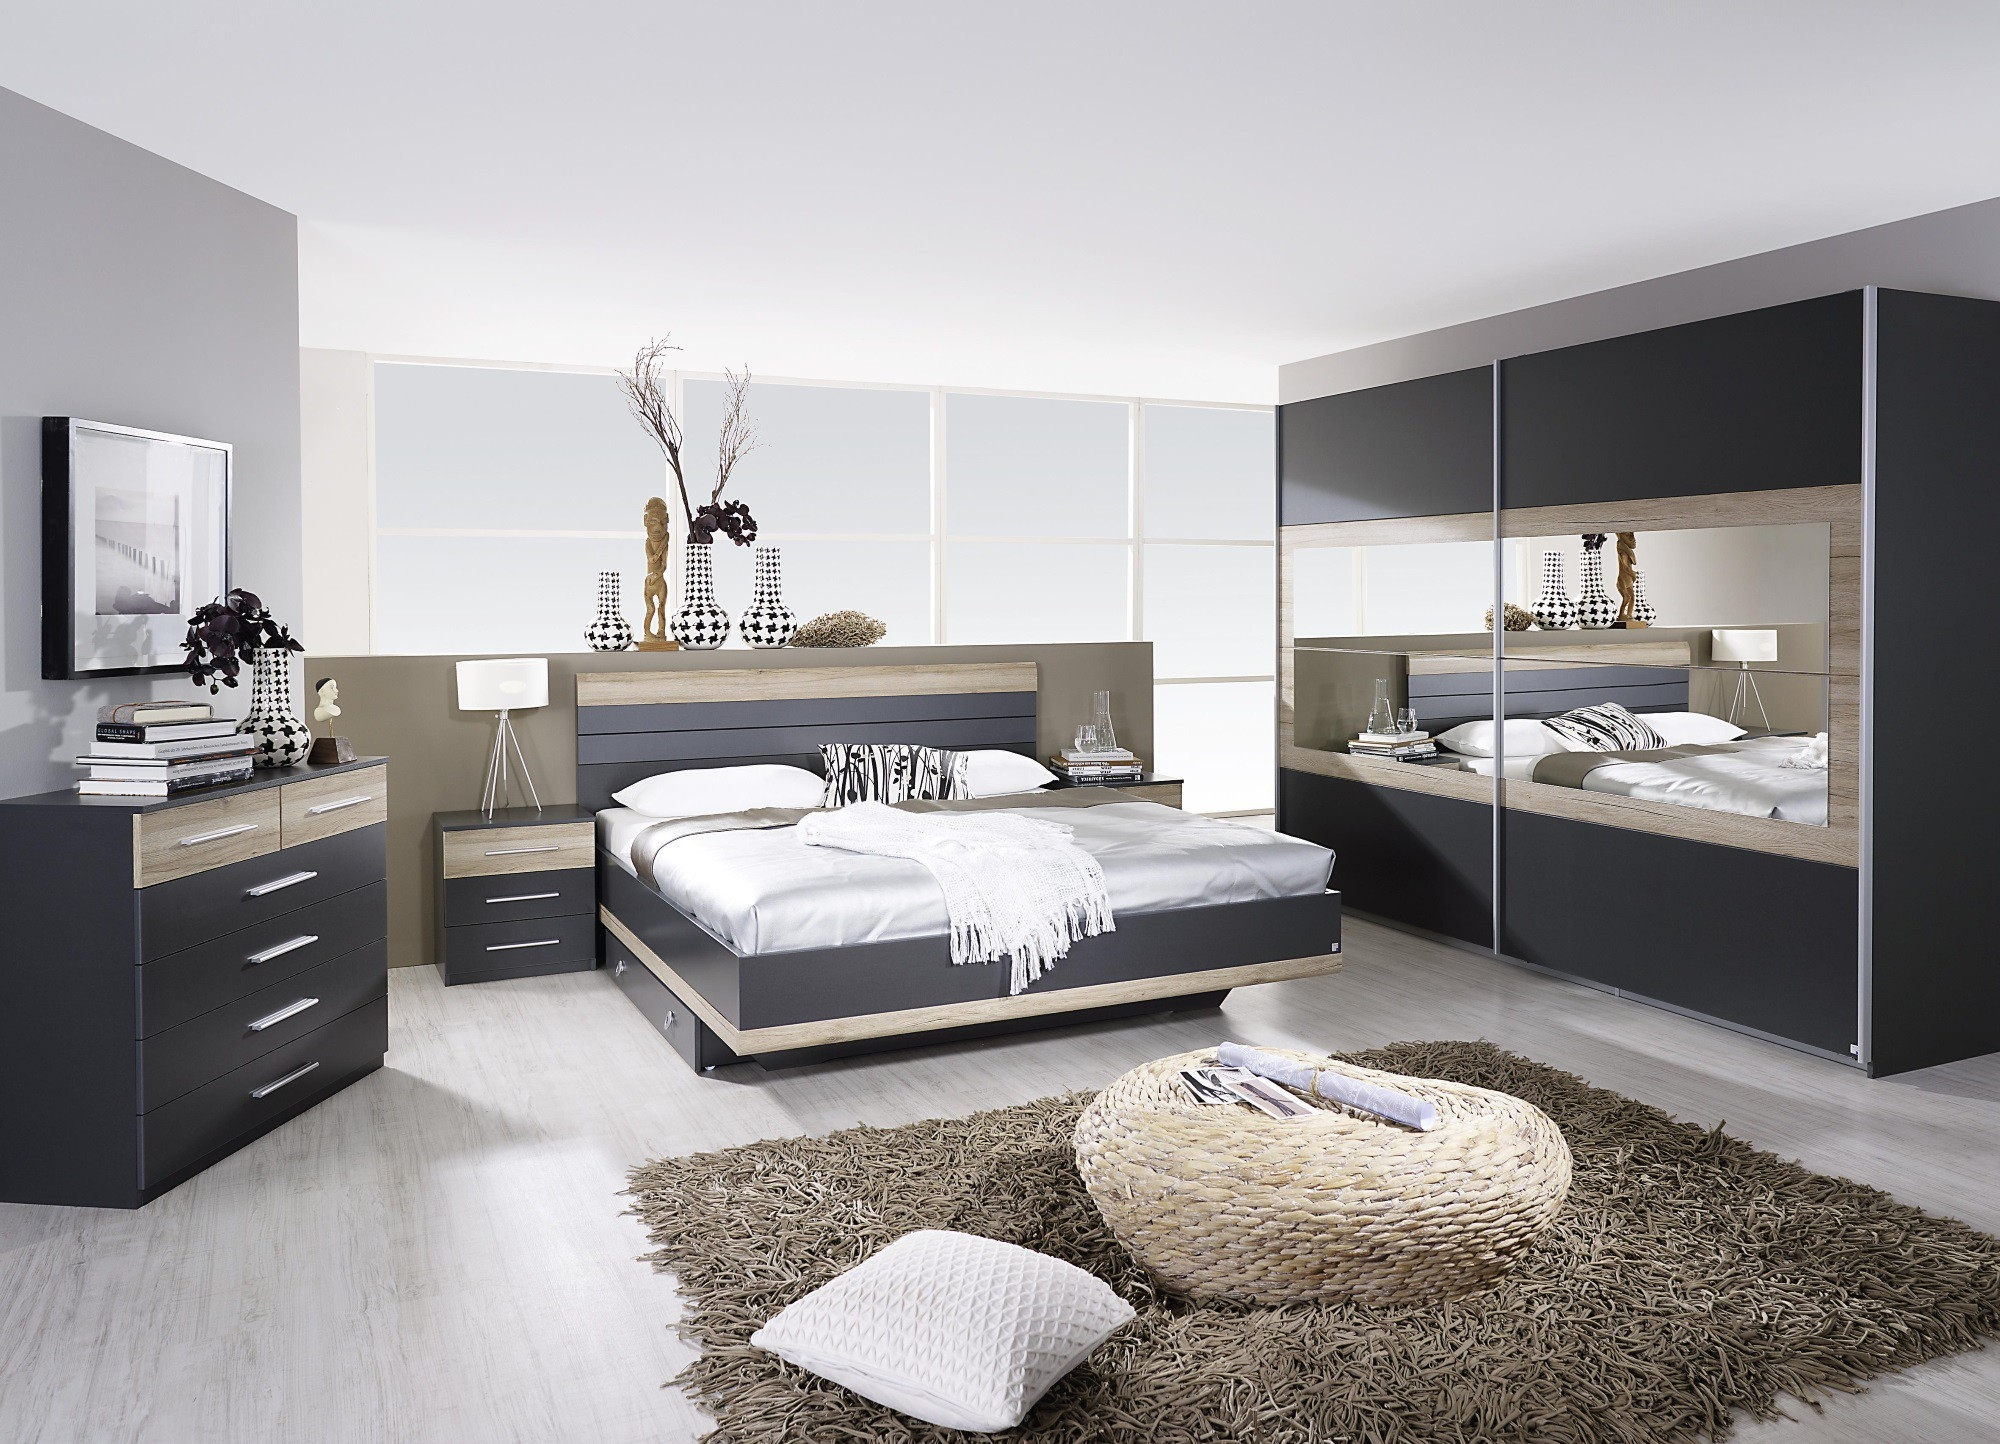 Chambre adulte compl te contemporaine gris ch ne clair for Deco chambre contemporaine adulte